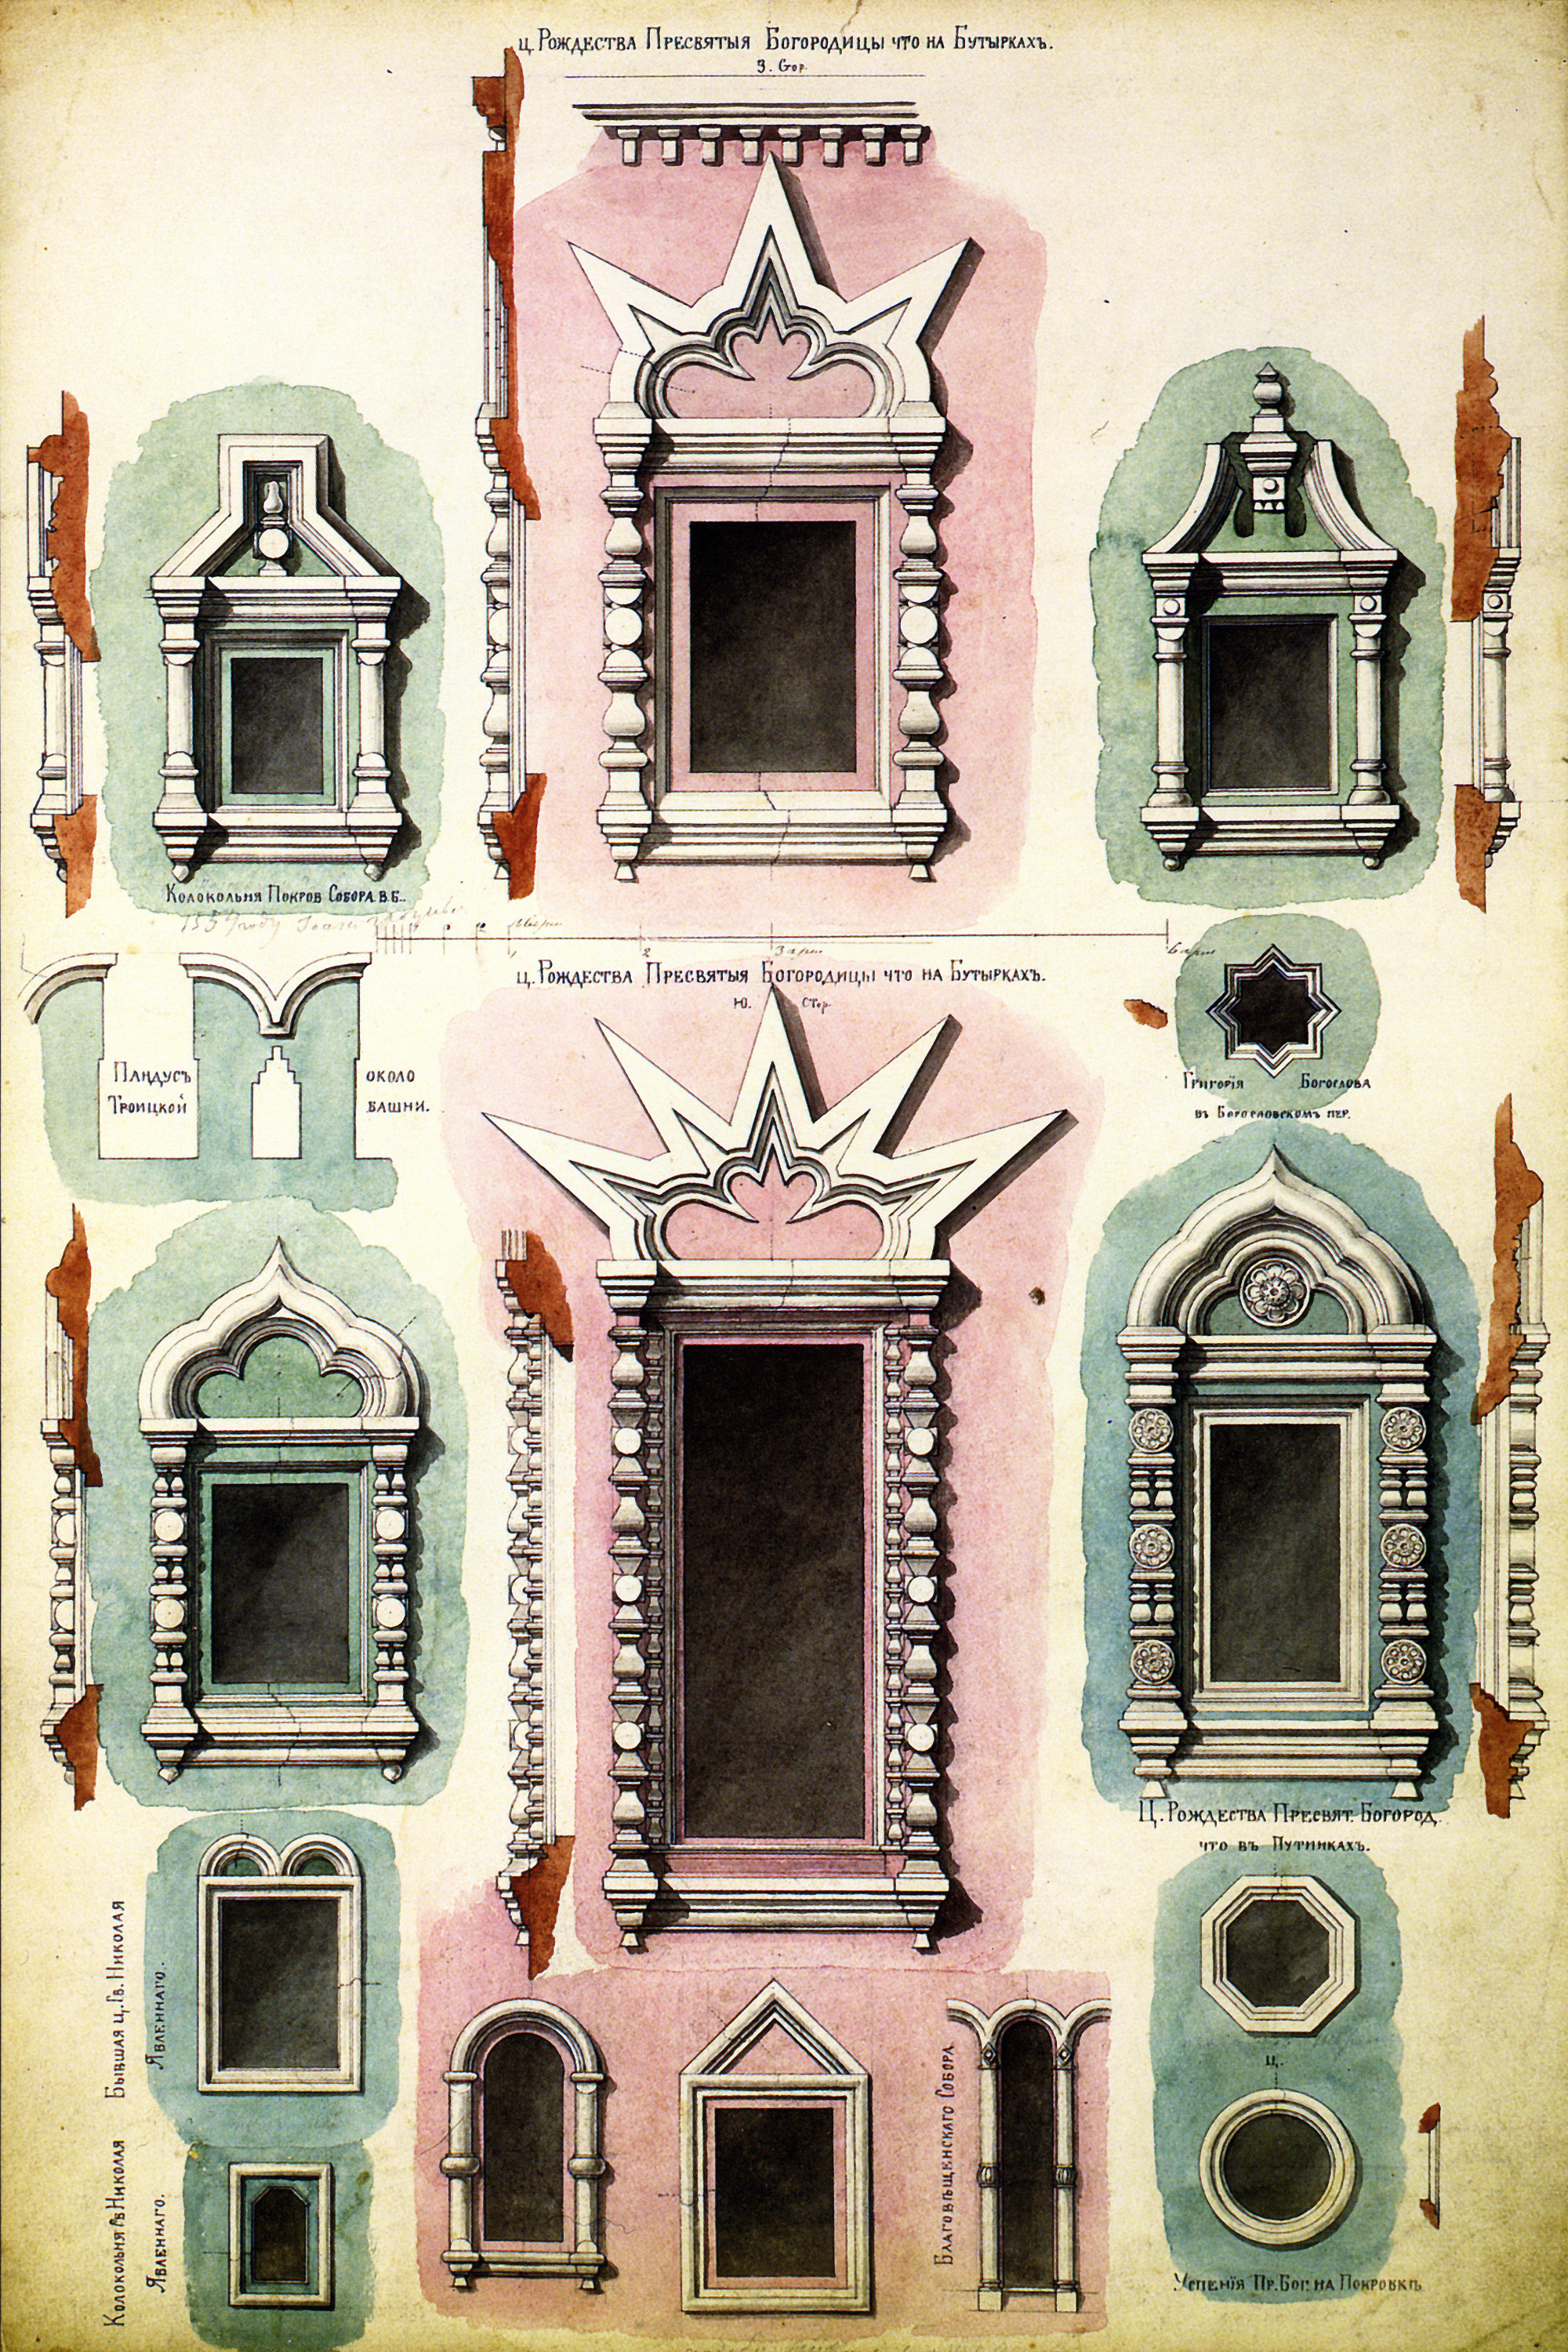 Muscovite_Window_and_Portals_17th_century_04